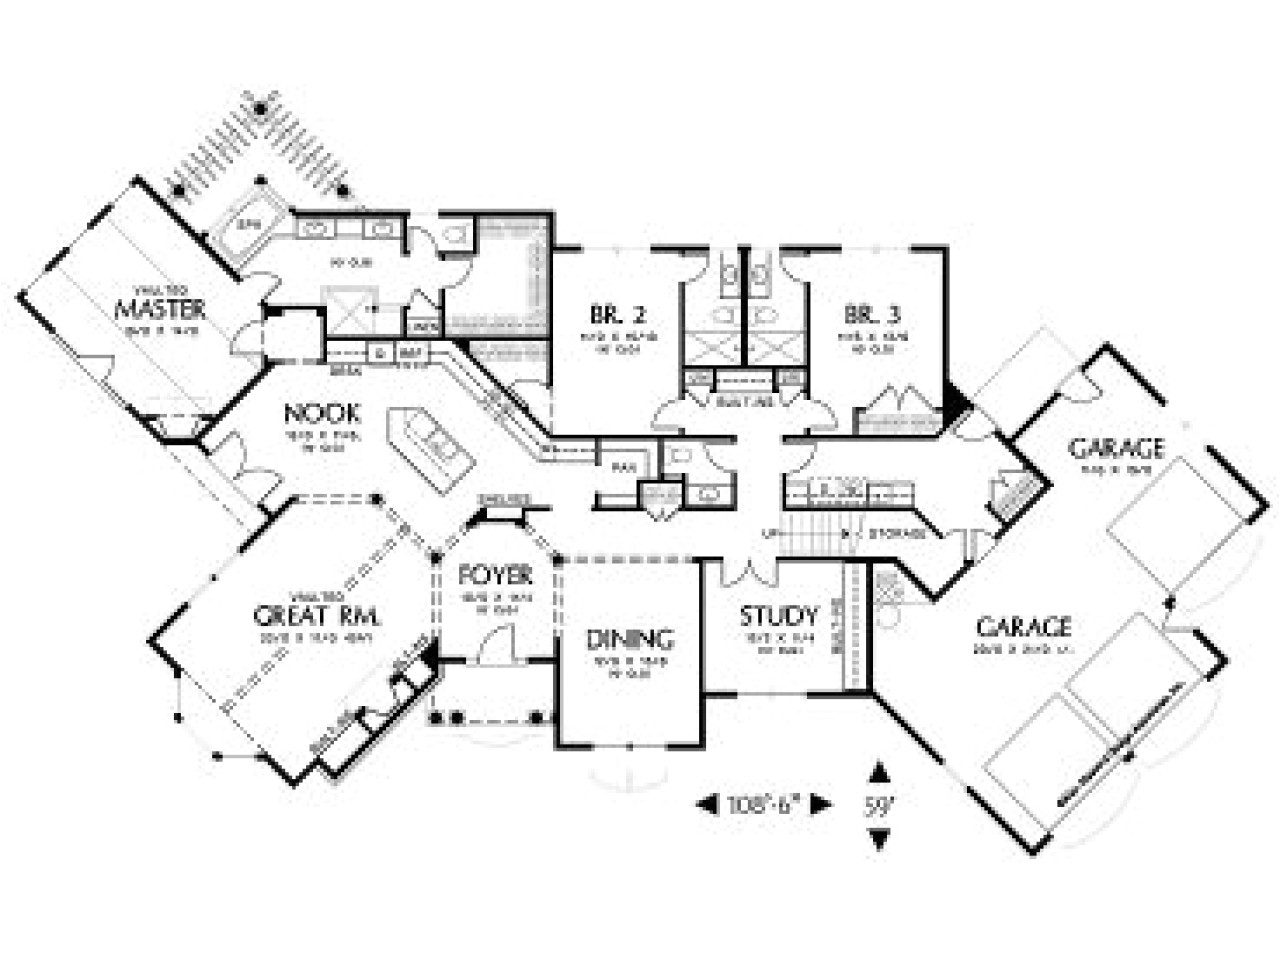 3204880c8d802d98 house floor plans with angled garage house floor plans with furniture